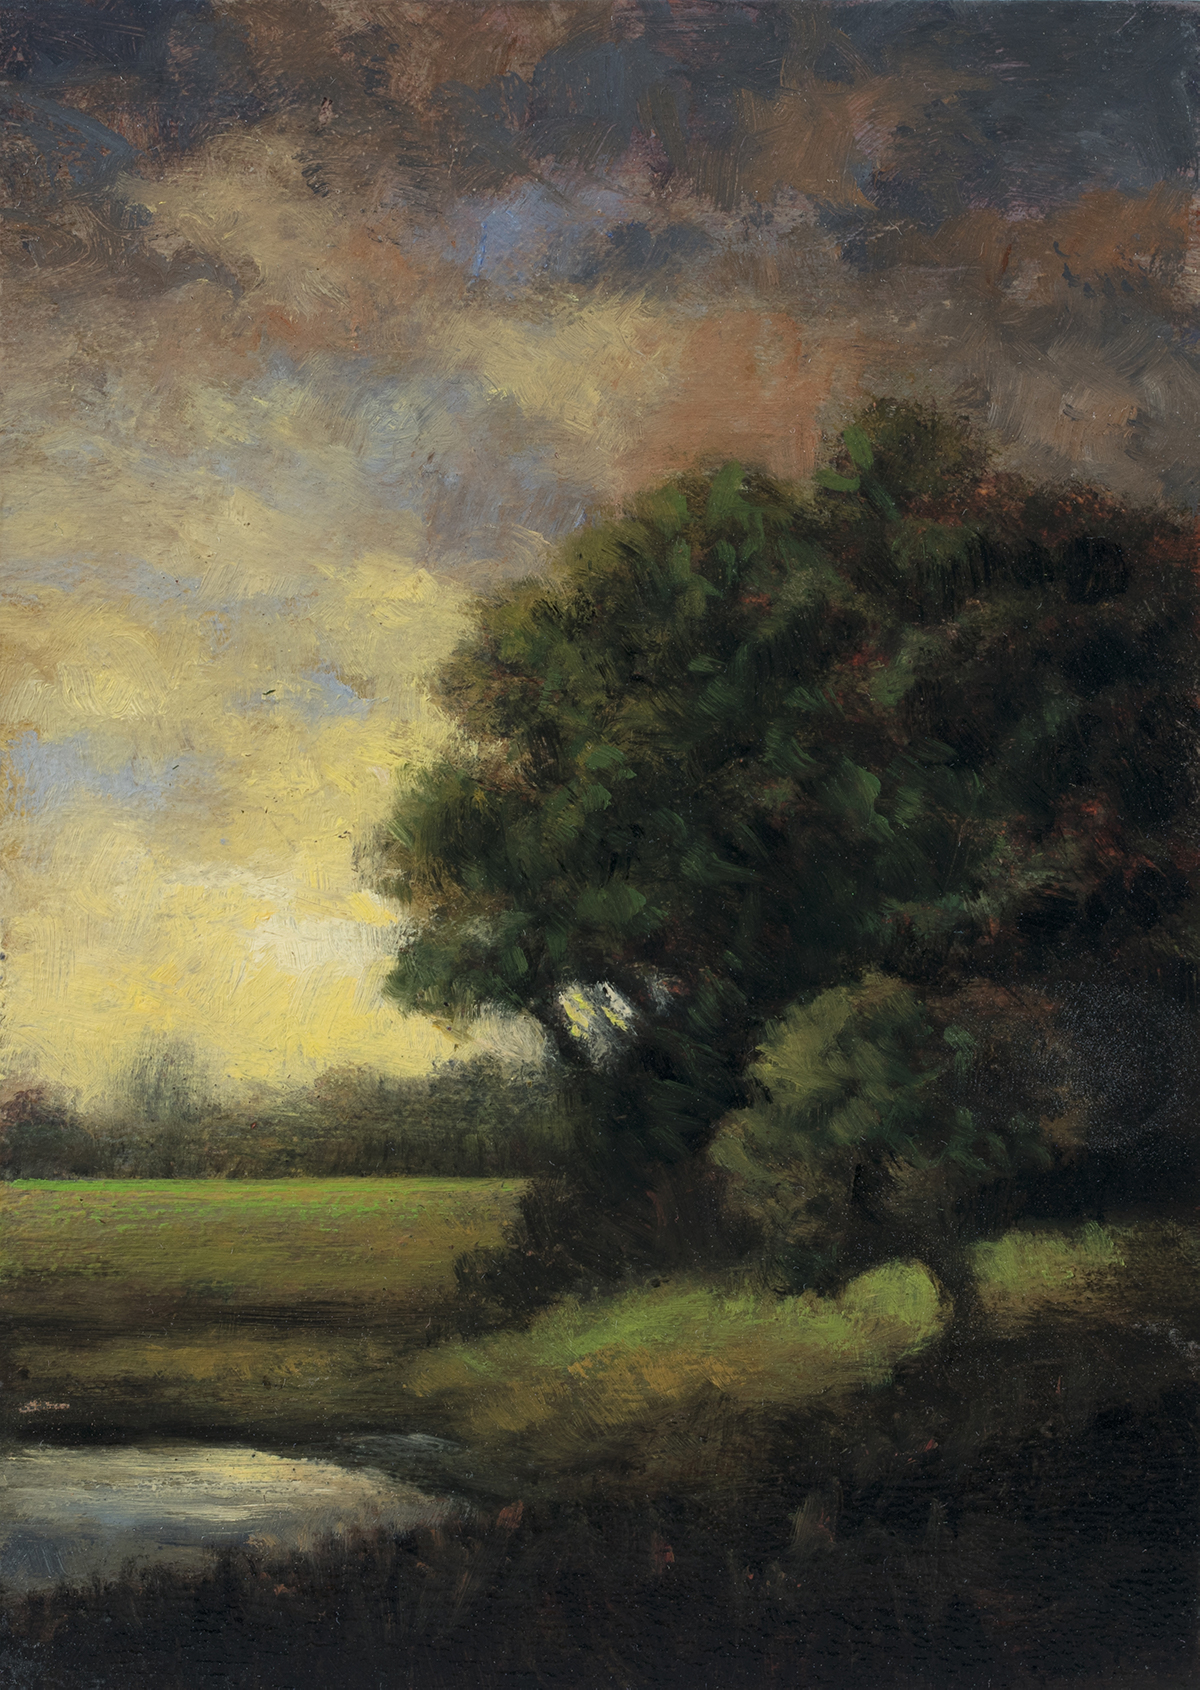 Early Spring by M Francis McCarthy - 5x7 Oil on Wood Panel